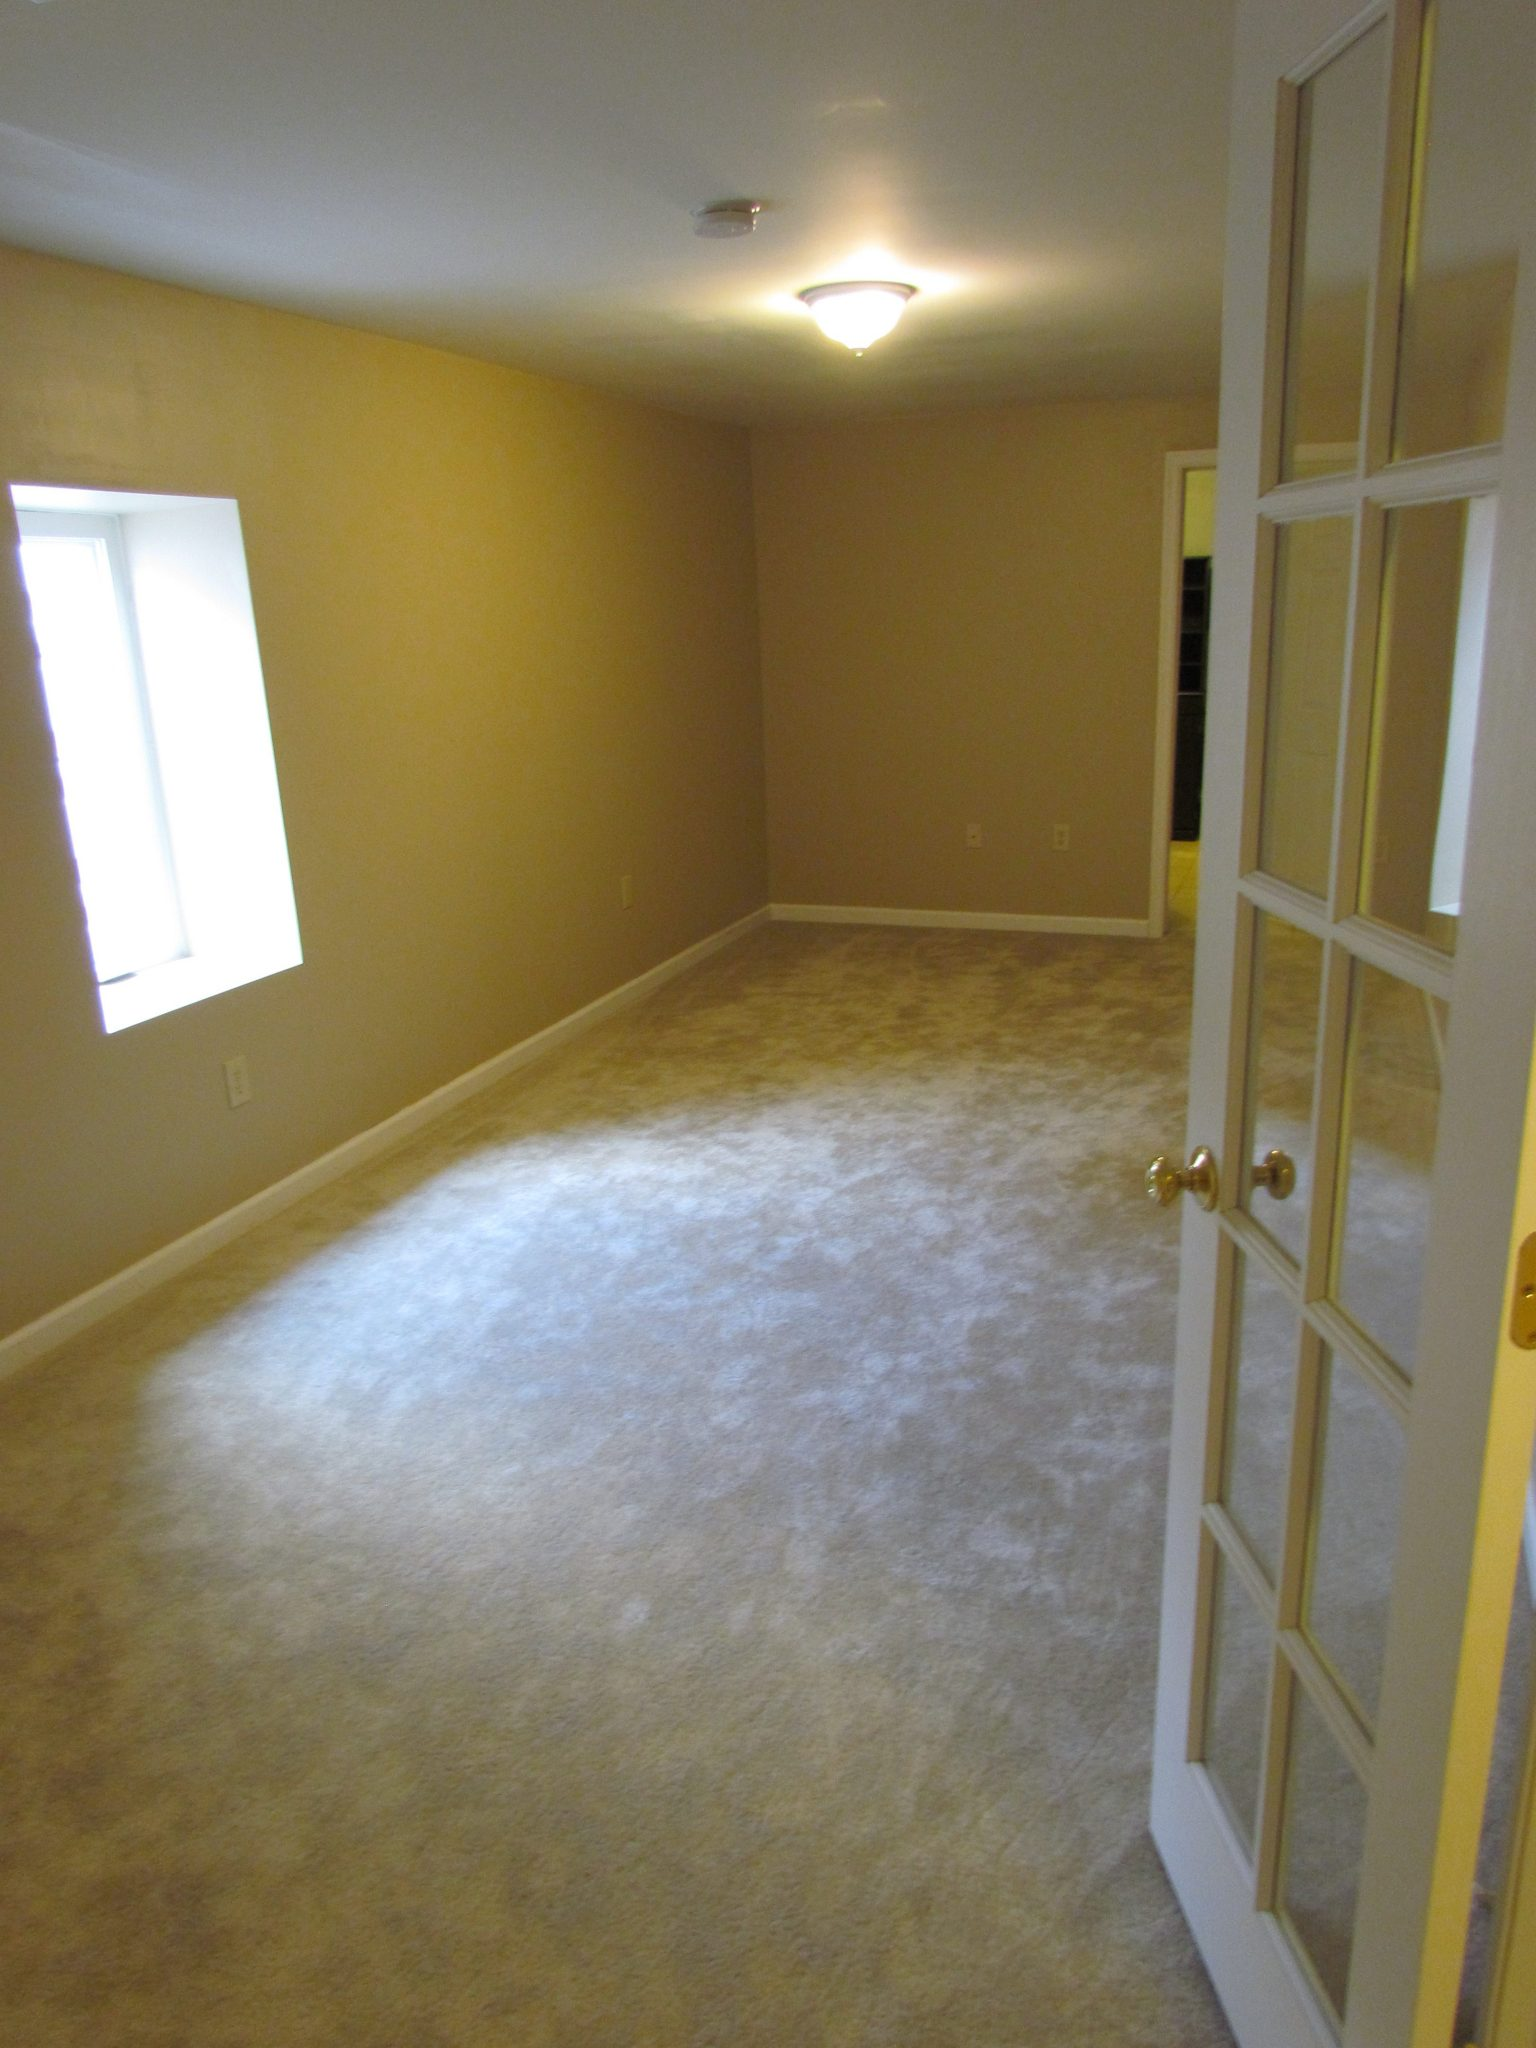 Finished Basement To Rent center room